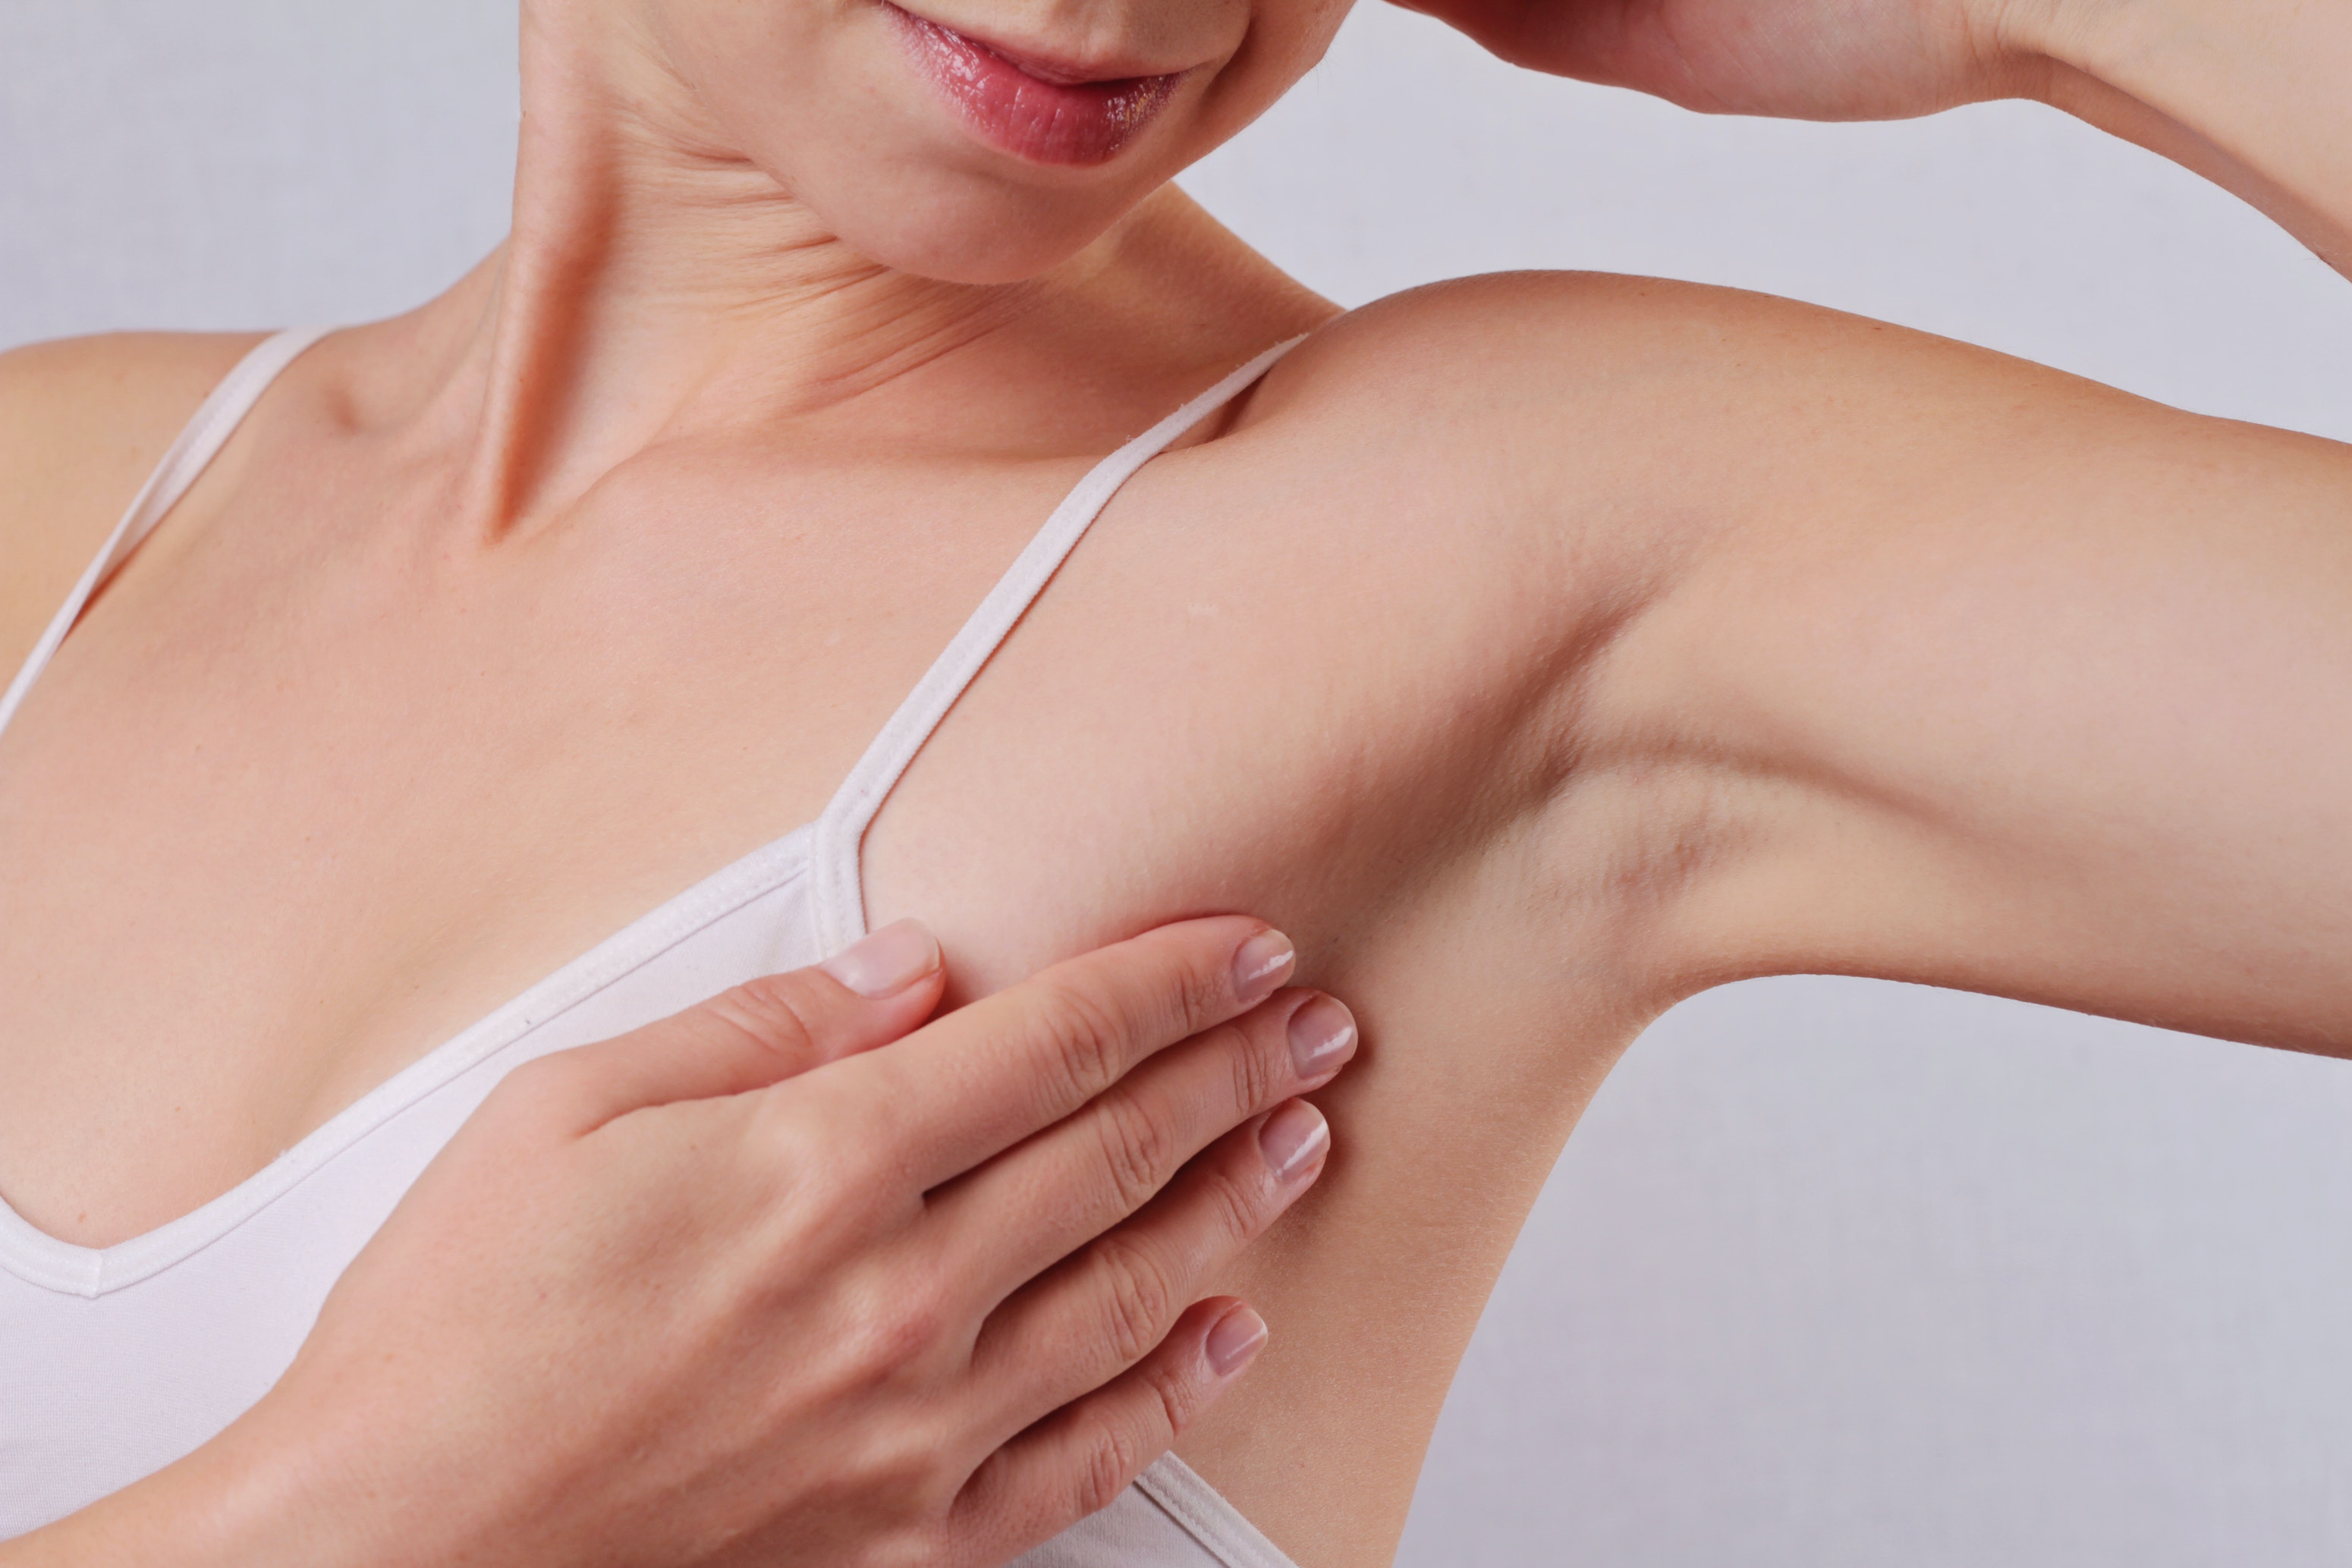 An image depicting a person suffering from skin changes on armpit symptoms